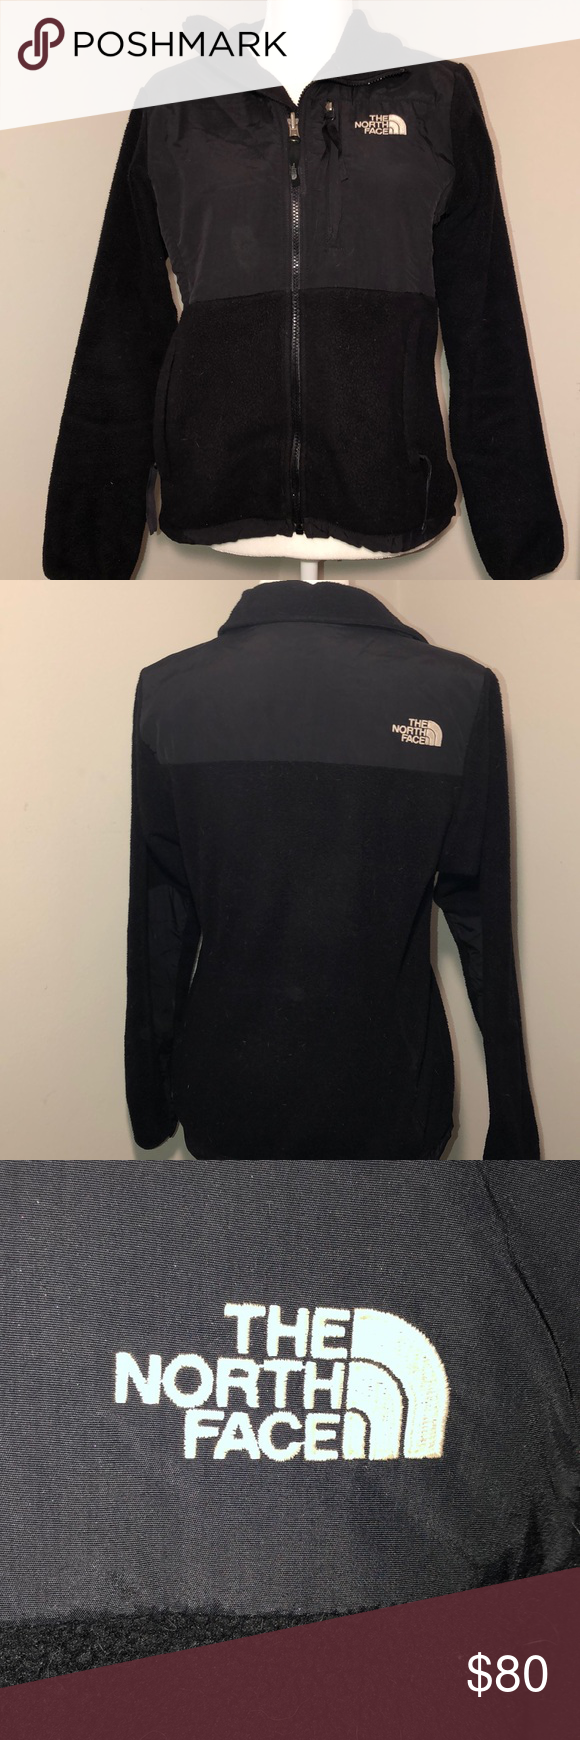 Classic North Face Jacket North Face Jacket The North Face Black North Face [ 1740 x 580 Pixel ]